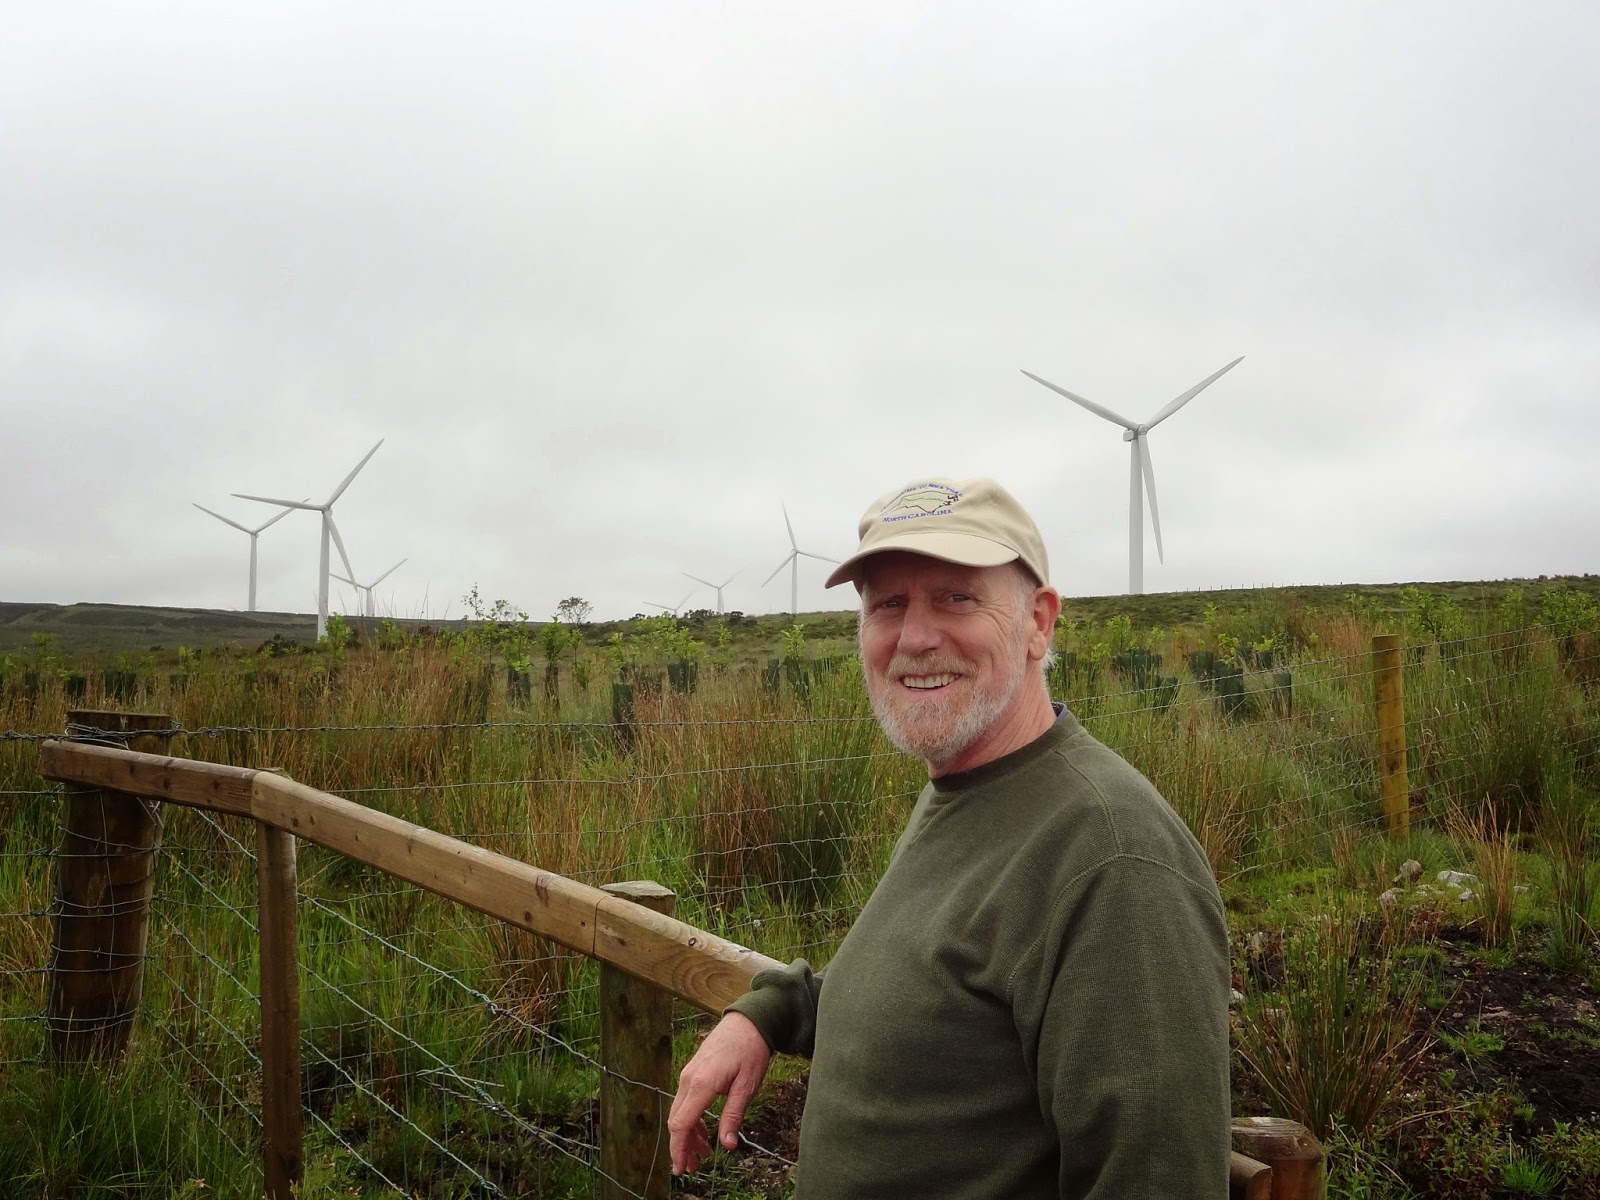 Skip stands in front of a field of wind turbines